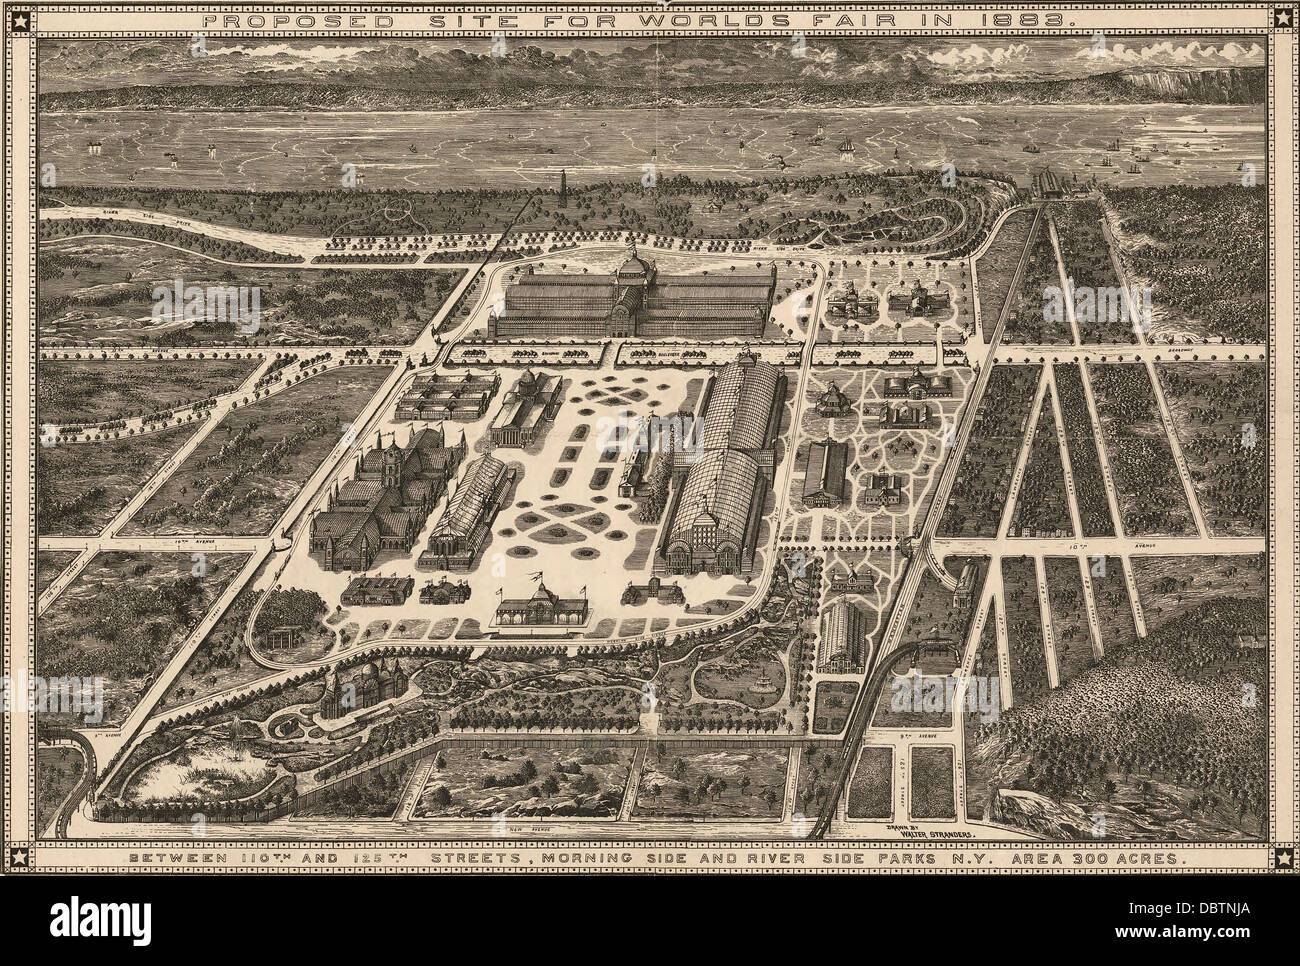 Proposed site for World's Fair in 1883 : between 110th and 125th Streets, Morning Side and River Side Parks, - Stock Image